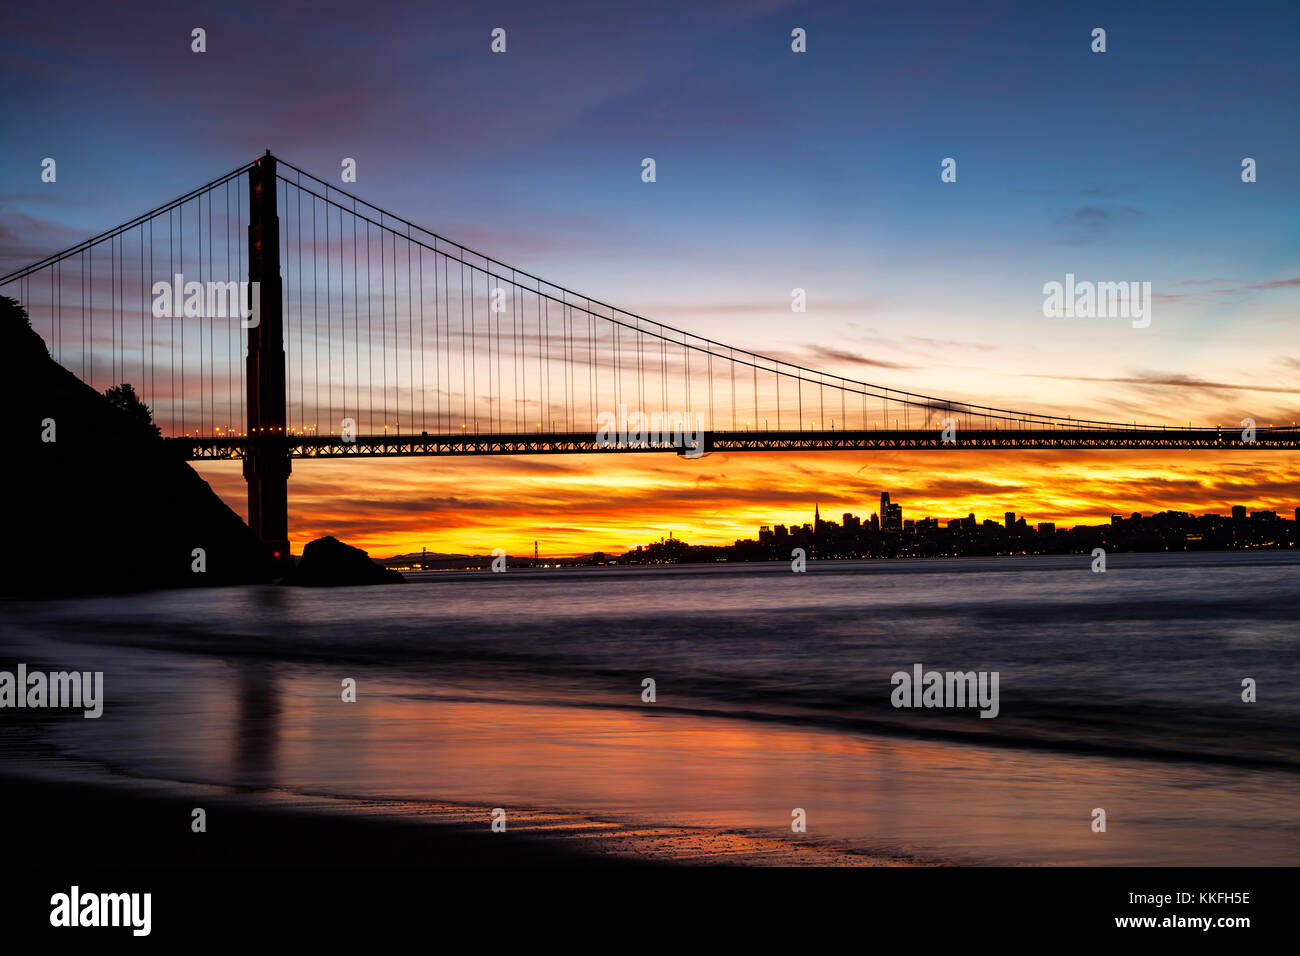 North Tower of the Golden Gate Bridge in the dawn hours with the Bay Bridge and San Francisco in the background. - Stock Image